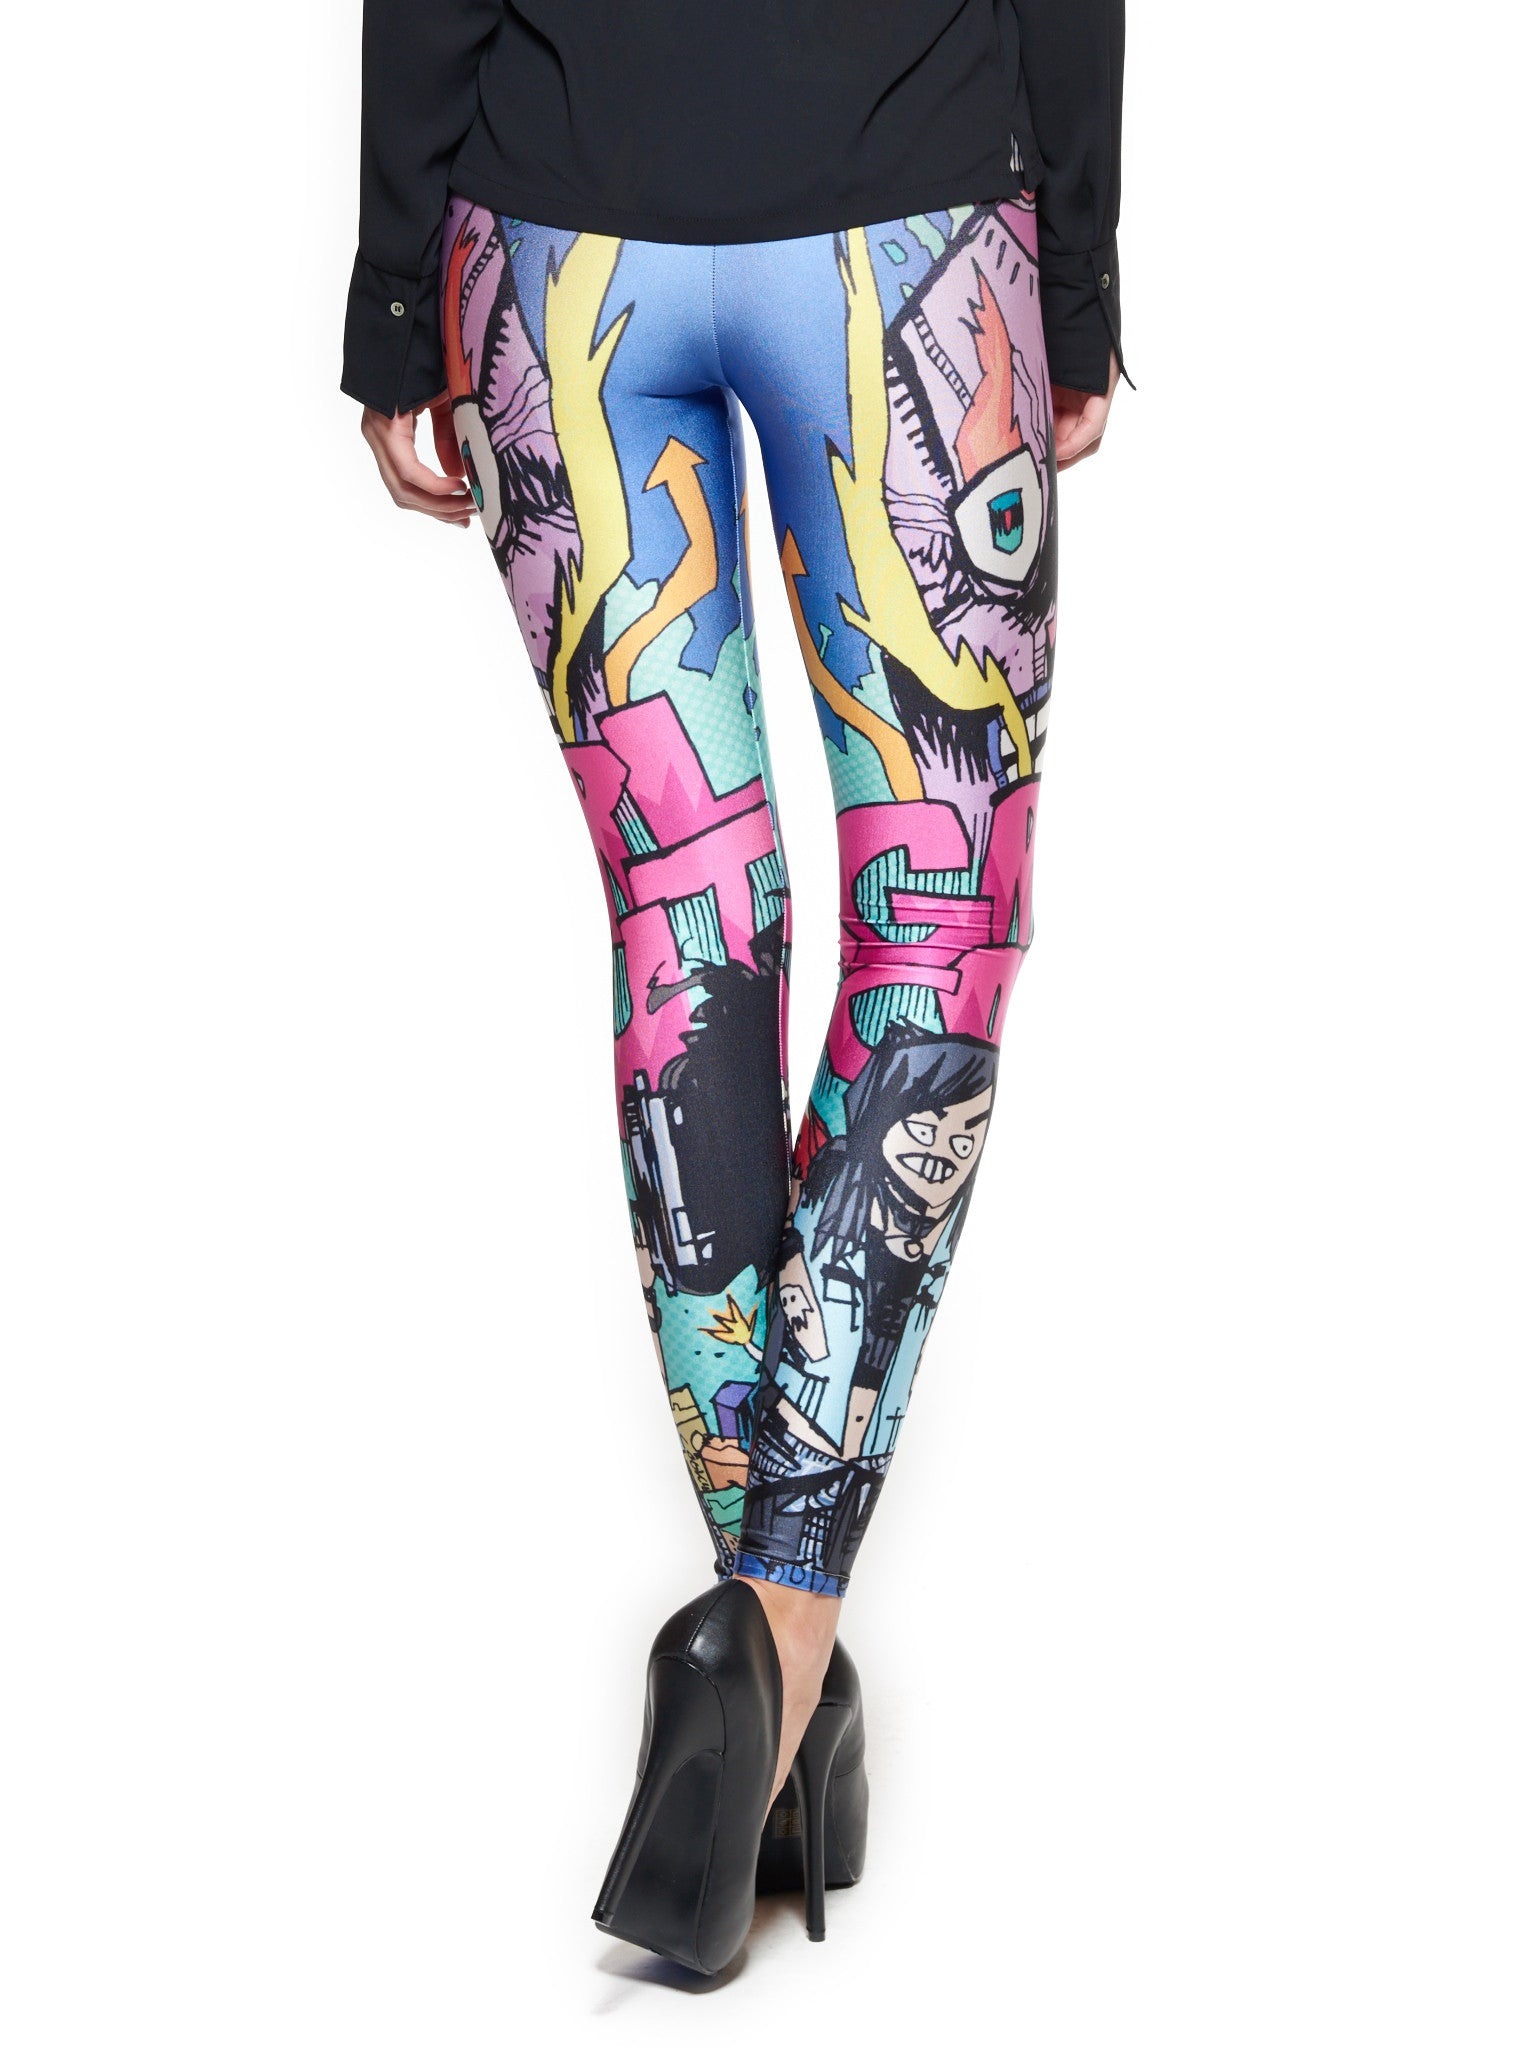 Grrl Scouts Skull Shroom Queen West Leggings - Nuvango  - 3